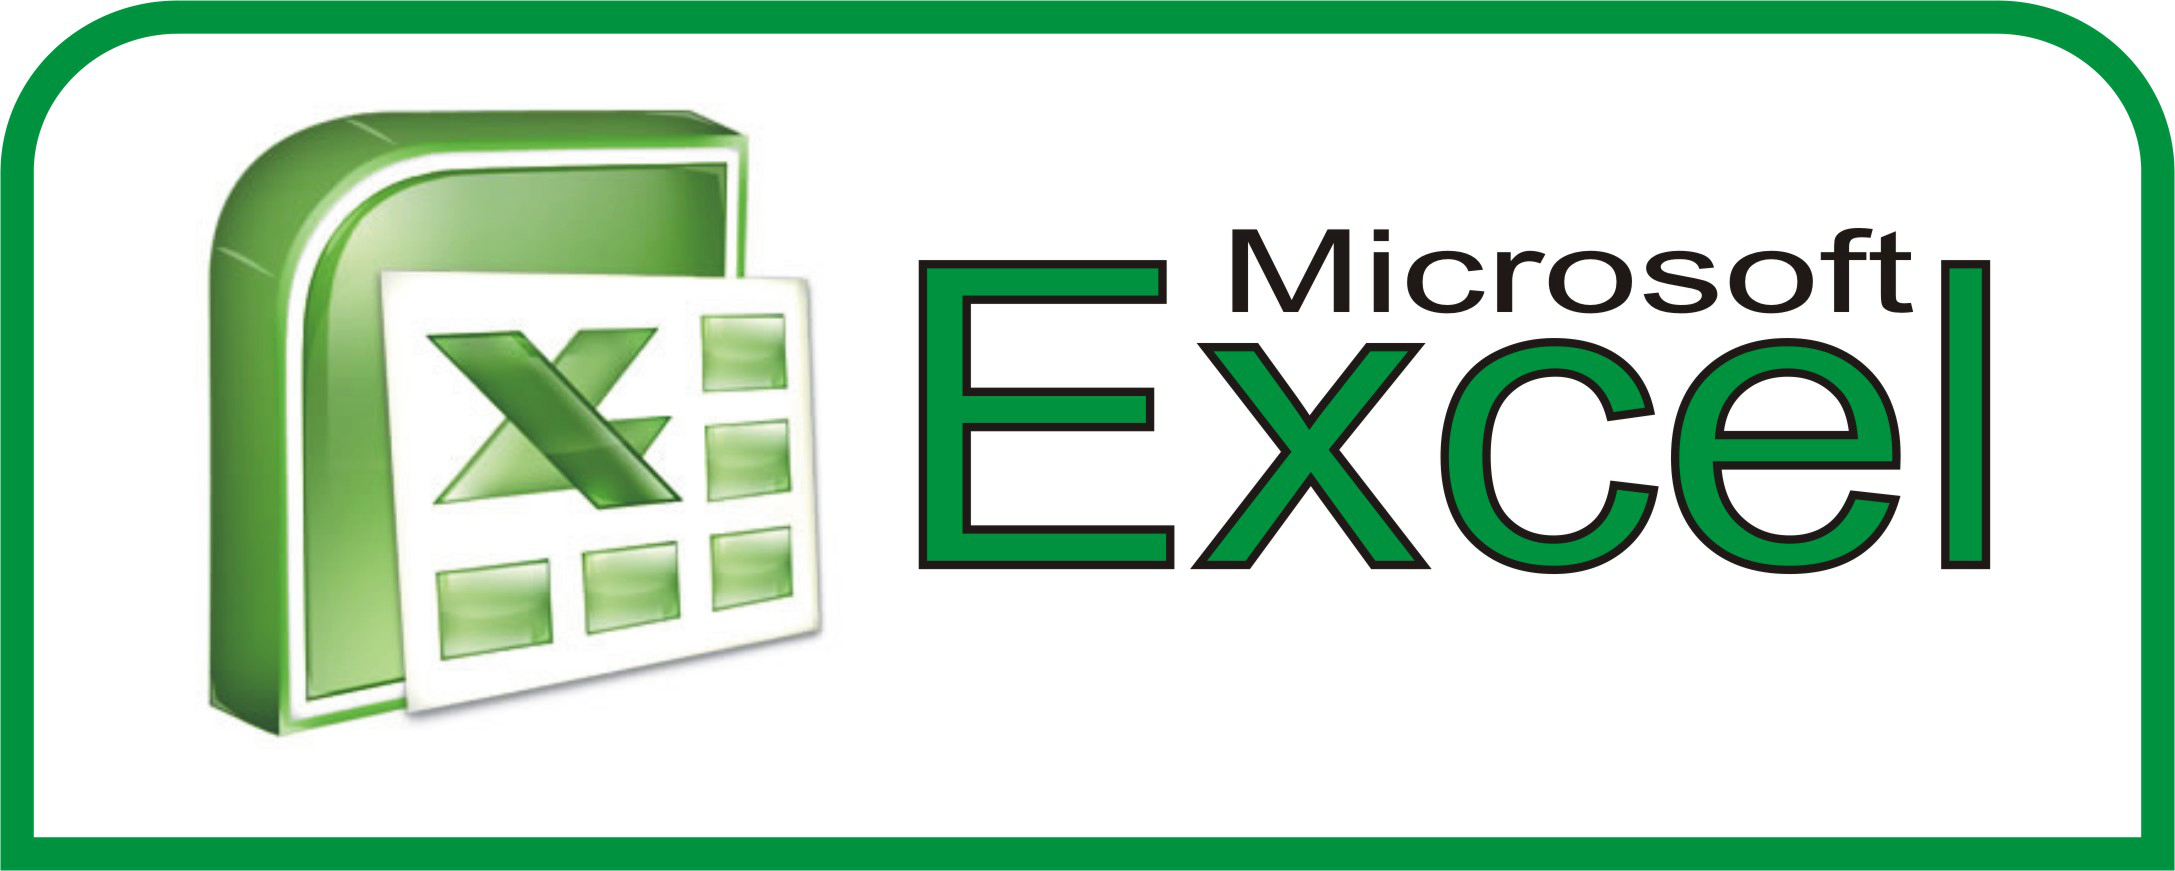 Ediblewildsus  Nice  Excel Shortcuts You Probably Didnt Know About  Techdissected With Great How To Calculate Date Difference In Excel Besides Ms Excel Password Remover Online Furthermore How To Convert Excel To Xml With Astounding Where Is The Toolbar In Excel Also Print Envelopes From Excel List In Addition Excel Academy Chelsea And Excel On A Mac As Well As Web Excel Editor Additionally How To Text Wrap In Excel From Techdissectedcom With Ediblewildsus  Great  Excel Shortcuts You Probably Didnt Know About  Techdissected With Astounding How To Calculate Date Difference In Excel Besides Ms Excel Password Remover Online Furthermore How To Convert Excel To Xml And Nice Where Is The Toolbar In Excel Also Print Envelopes From Excel List In Addition Excel Academy Chelsea From Techdissectedcom